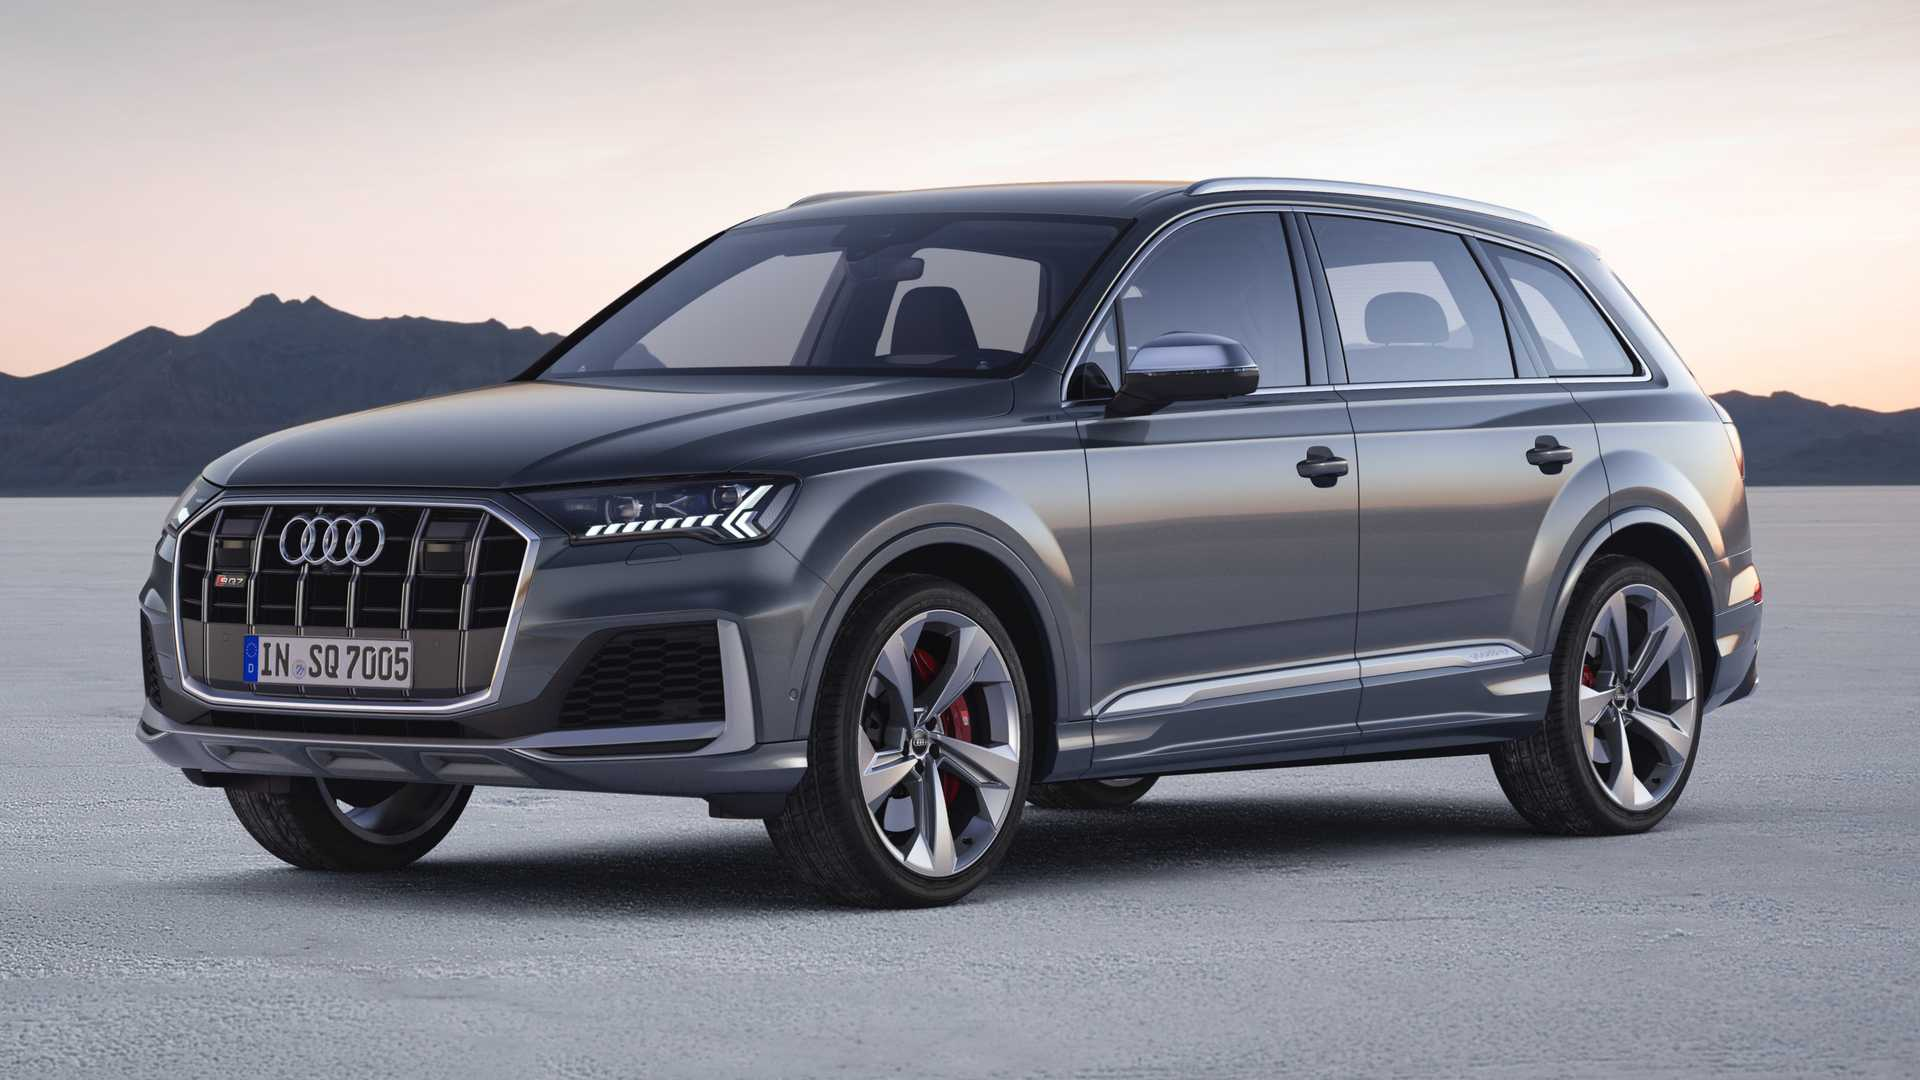 2018 Audi SQ7 TDI: Specs, Design, Price >> 2020 Audi Sq7 Tdi Arrives With Fresh Design Torque Rich V8 Diesel